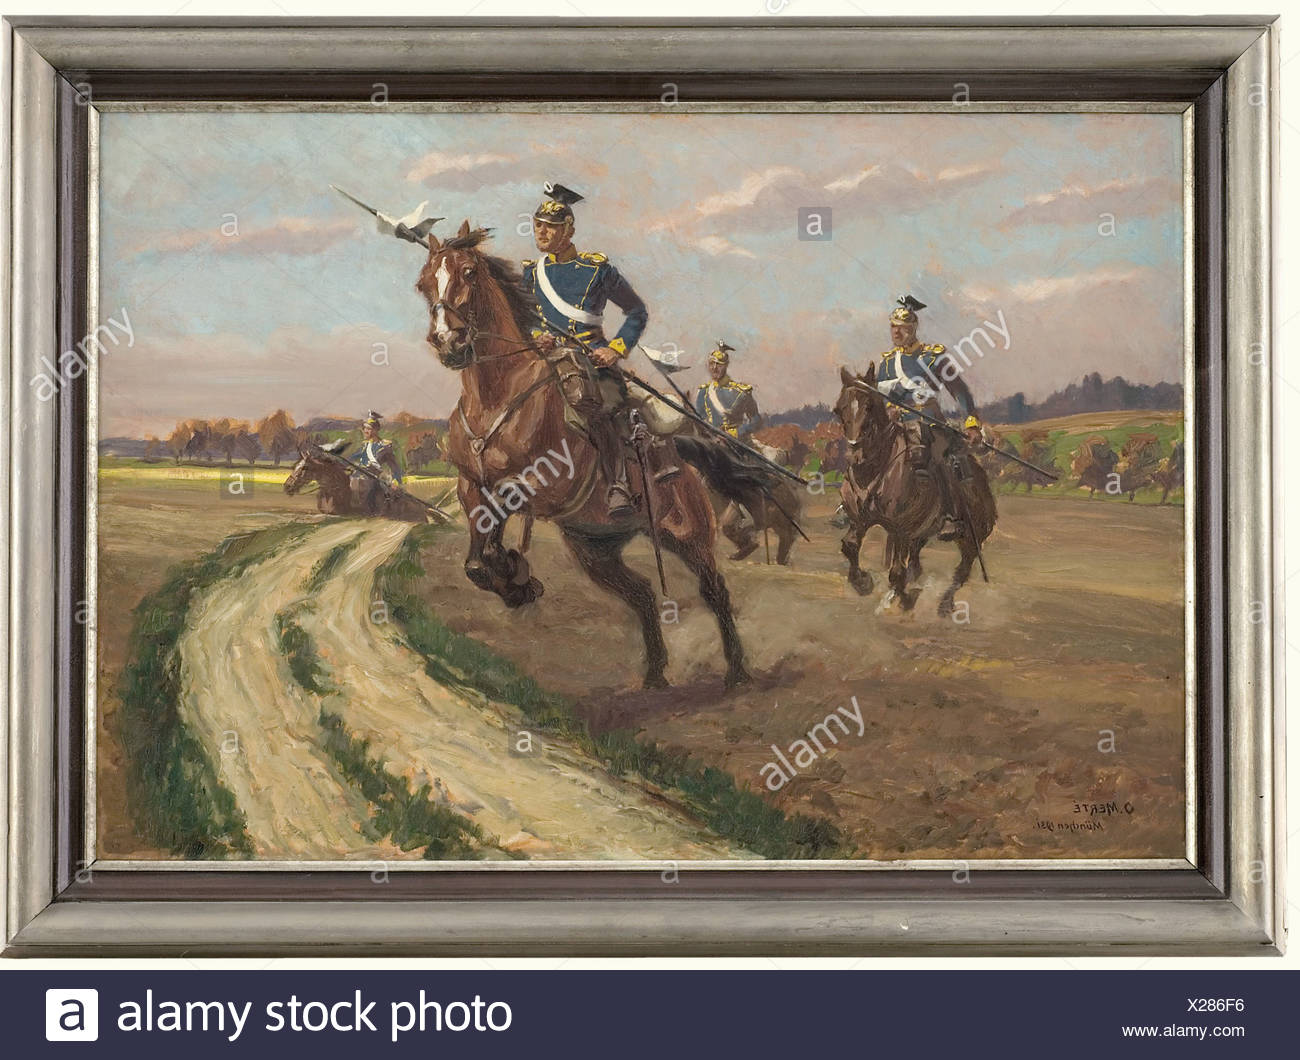 """Oskar Merté (1872 - 1938), """"Ulanen Patrouille"""" (Uhlan Patrol) A picture of four uhlans from the Prussian Uhlan Regiment Graf Haeseler No. 11 riding across country at a gallop. Oil on canvas. Signed """"O. Merté München 1931"""" at the lower left. Picture dimensions: 65 x 94 cm. Framed dimensions: 82 x 111 cm. The picture appeared as the cover picture on the Deutsche Kavalleriezeitung (German Cavalry Journal) volume 9/1931 (included). The Munich military and horse painter Oskar Merté studied at the Munich Academy and for years was a contributor to the """"Fliegende Blätt, Stock Photo"""